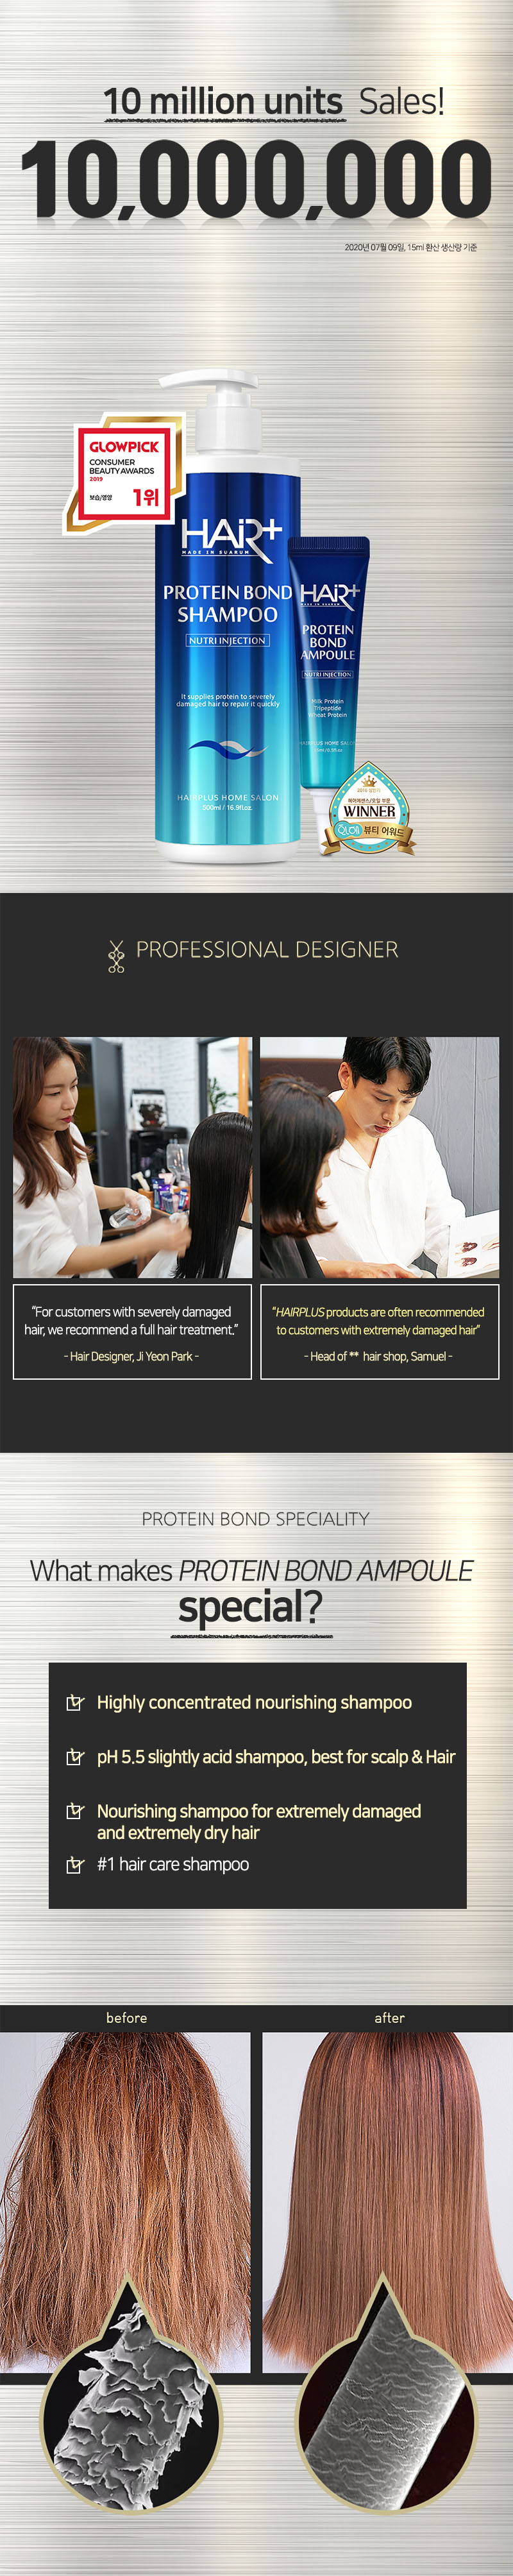 Hair Plus Protein Bond Shampoo 01